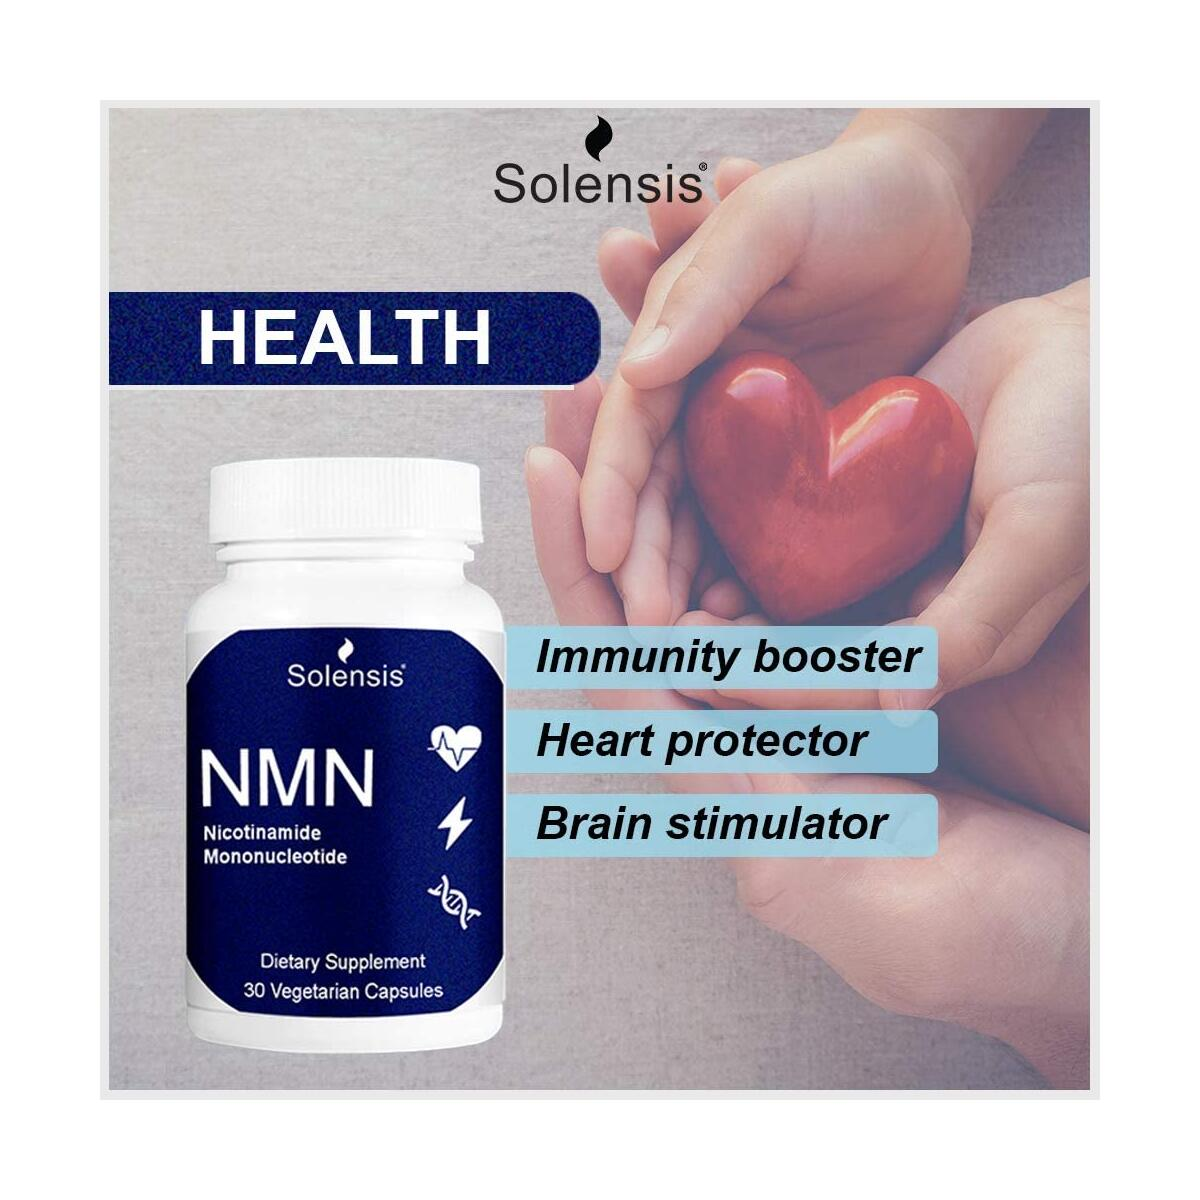 NMN Supplement 400MG / Capsule (30 Pills) - Pure Nicotinamide Mononucleotide - NAD+ & Energy Booster - Anti-Aging & Antioxidant - Vegan & Third Party Tested